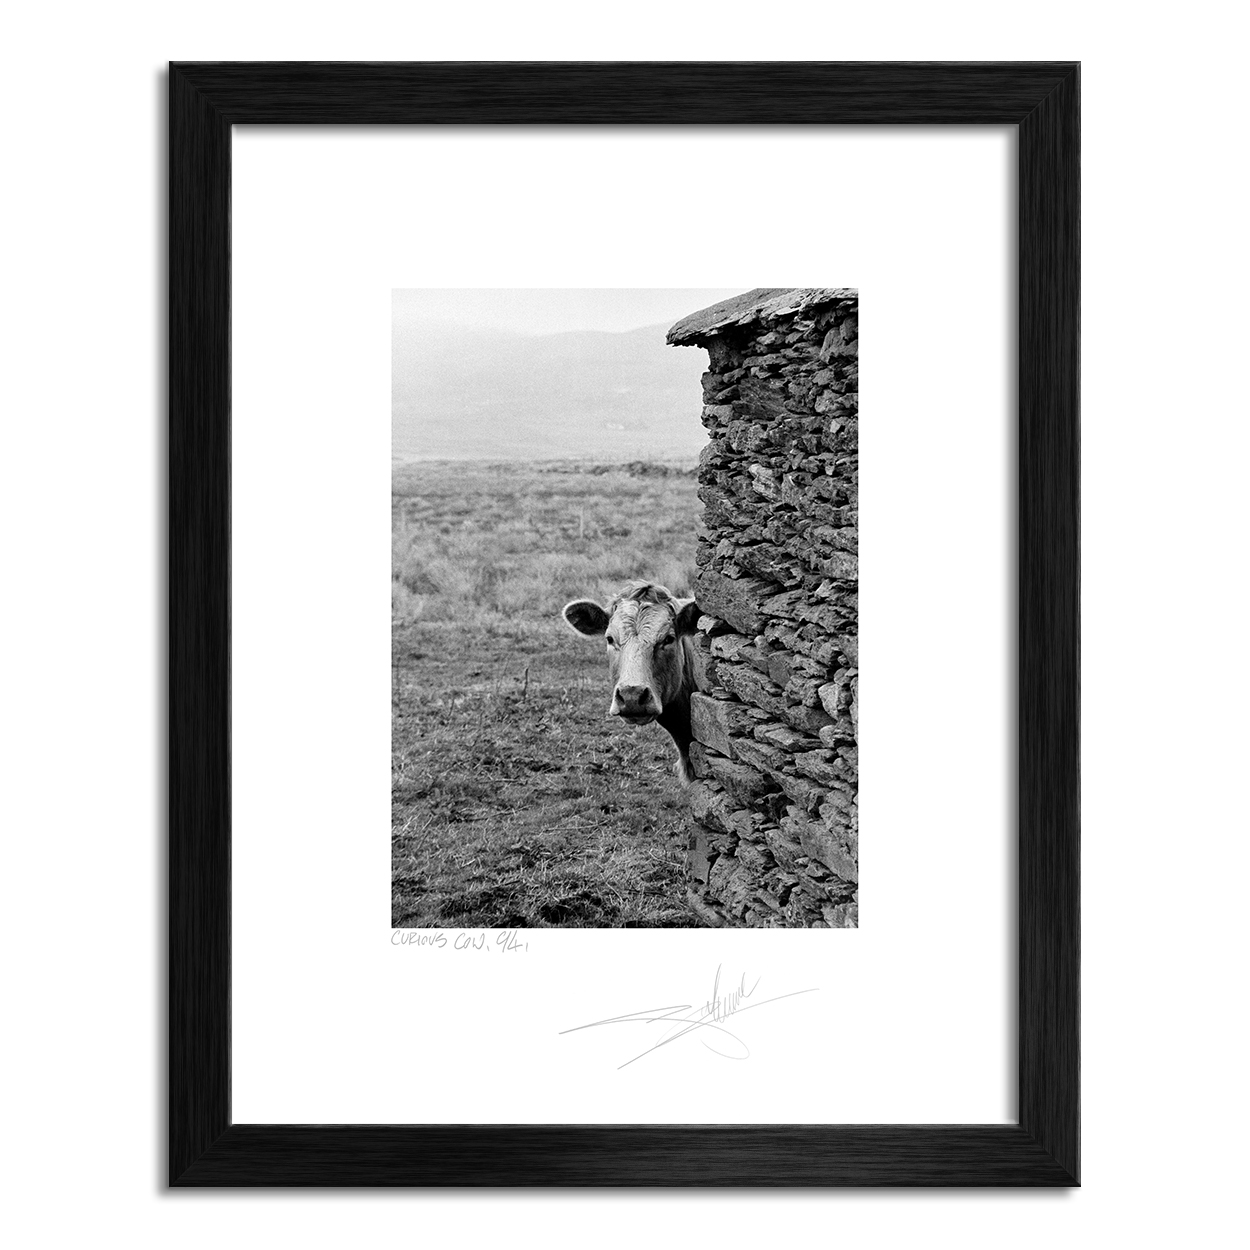 "Curious Cow, Co. Kerry 94 - 24""x30"" image"